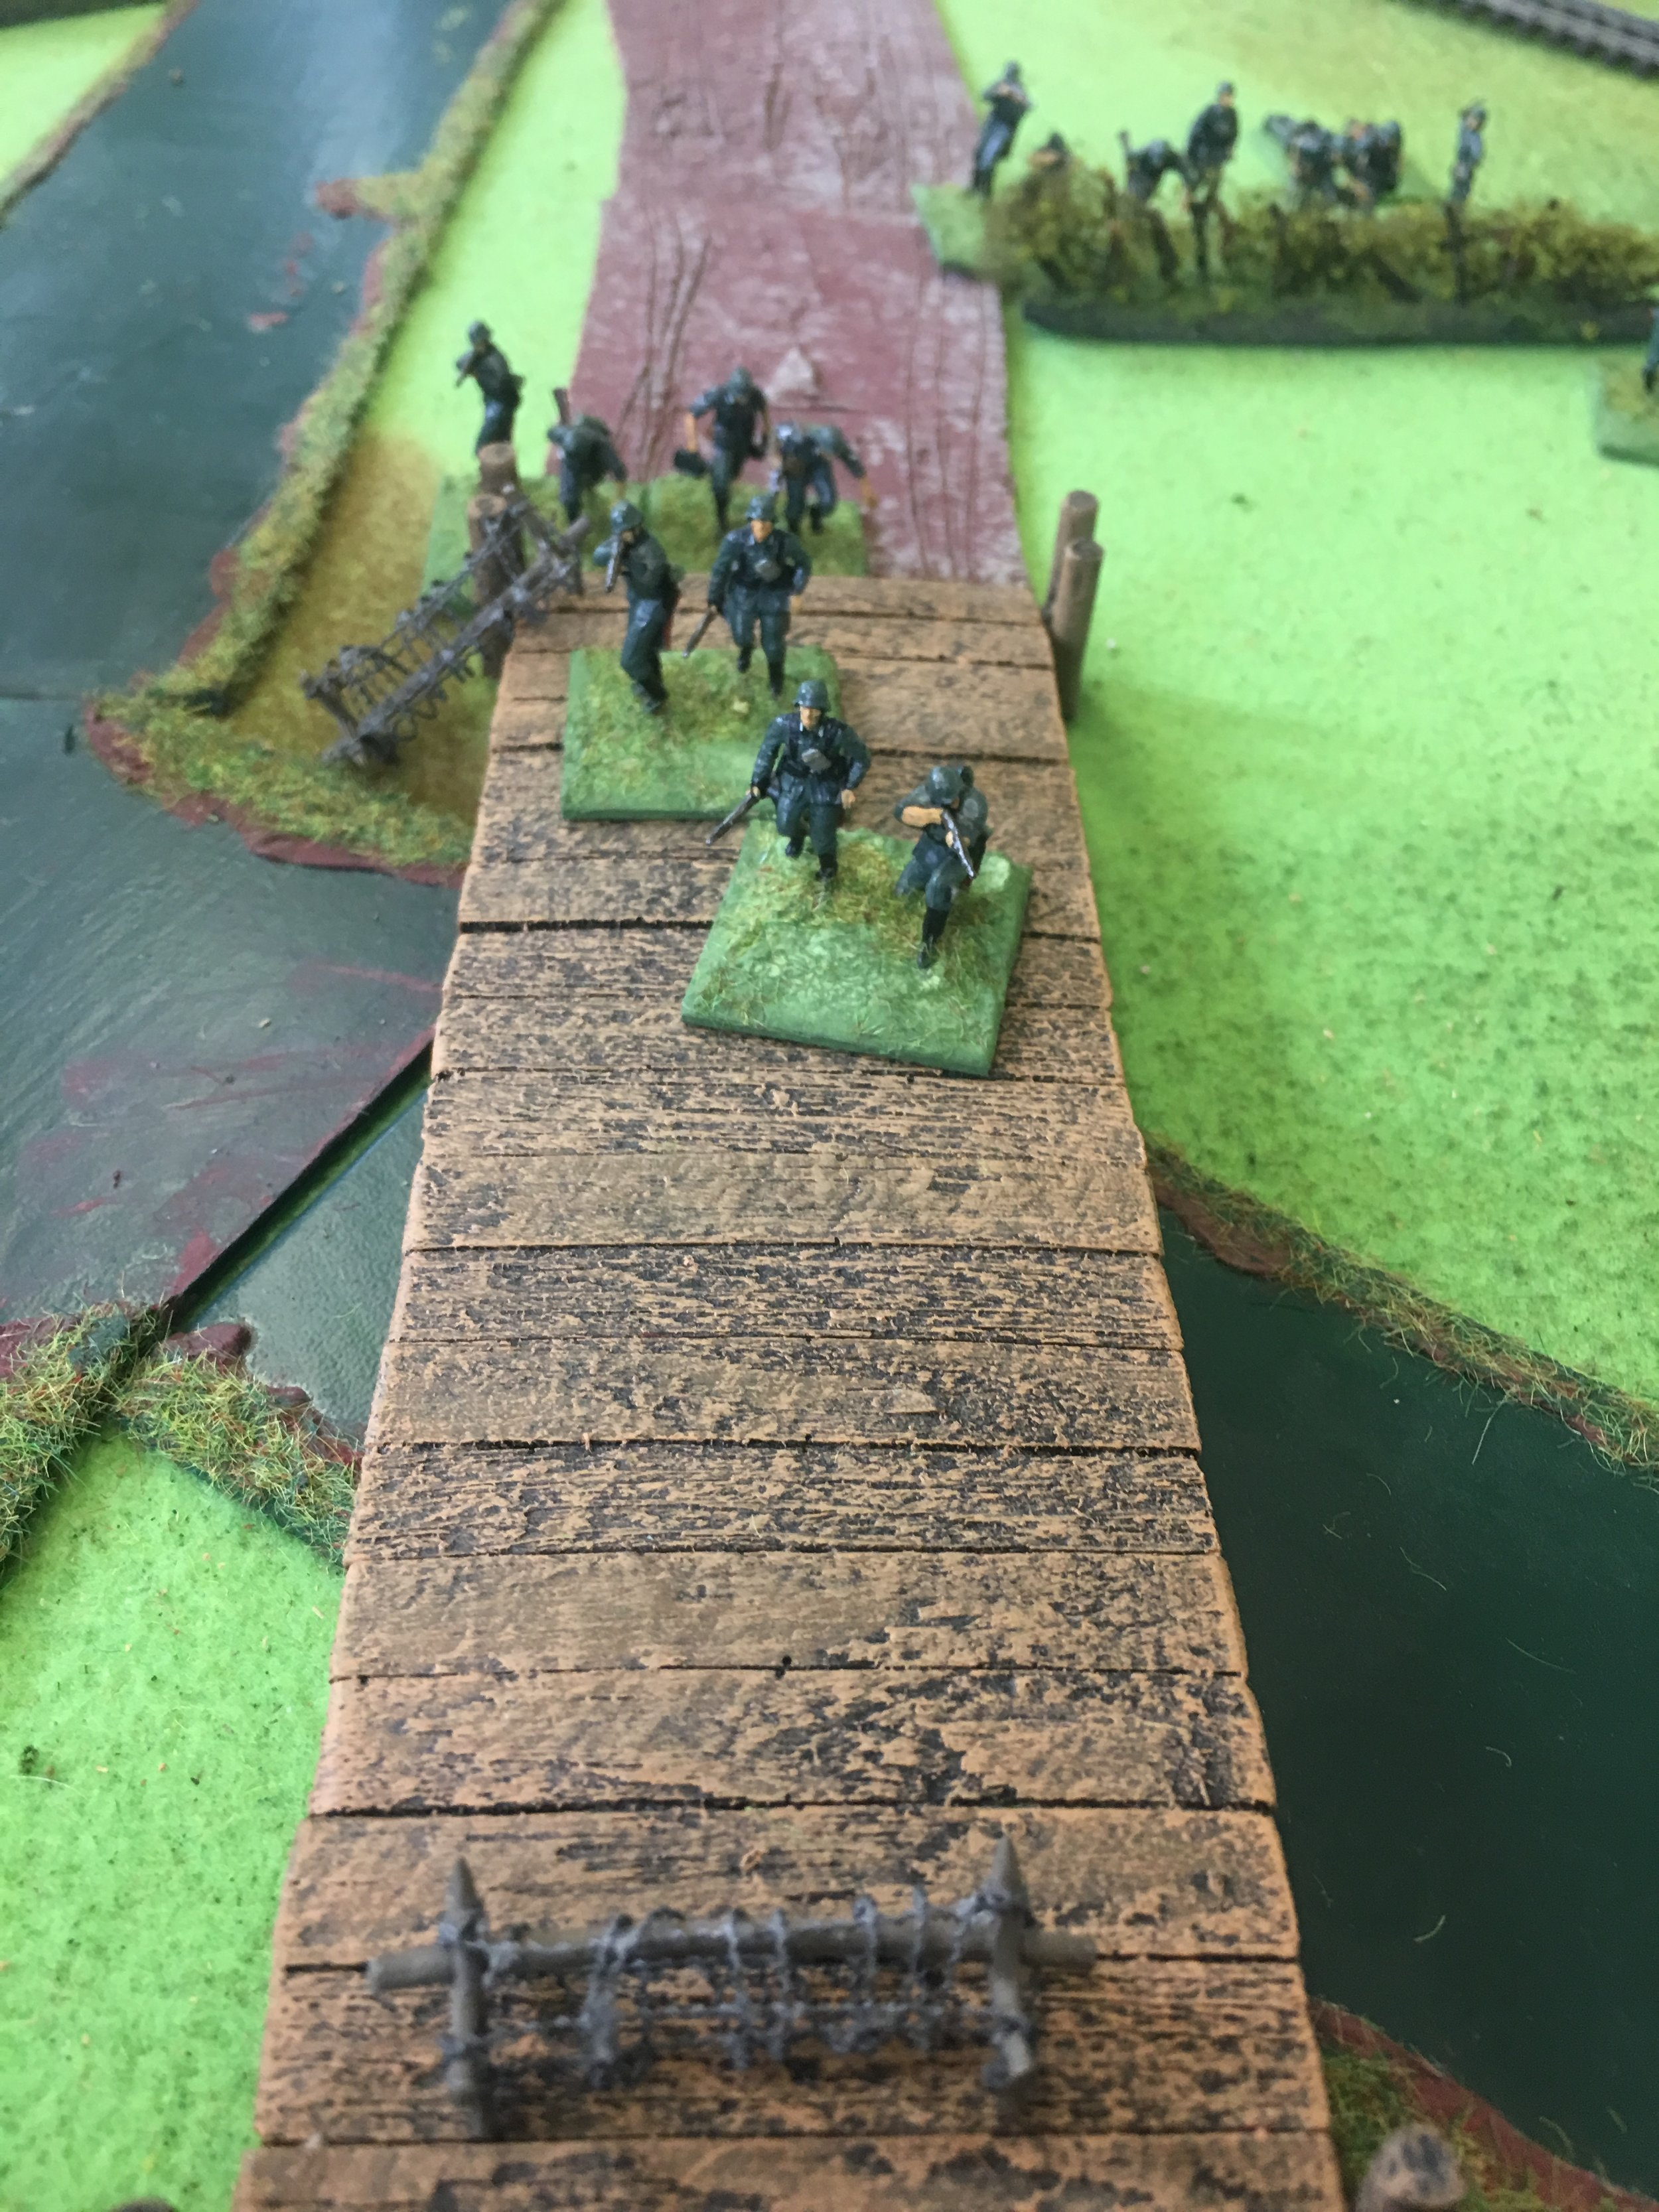 The Germans managed to establish a small bridgehead, but took heavy casualties